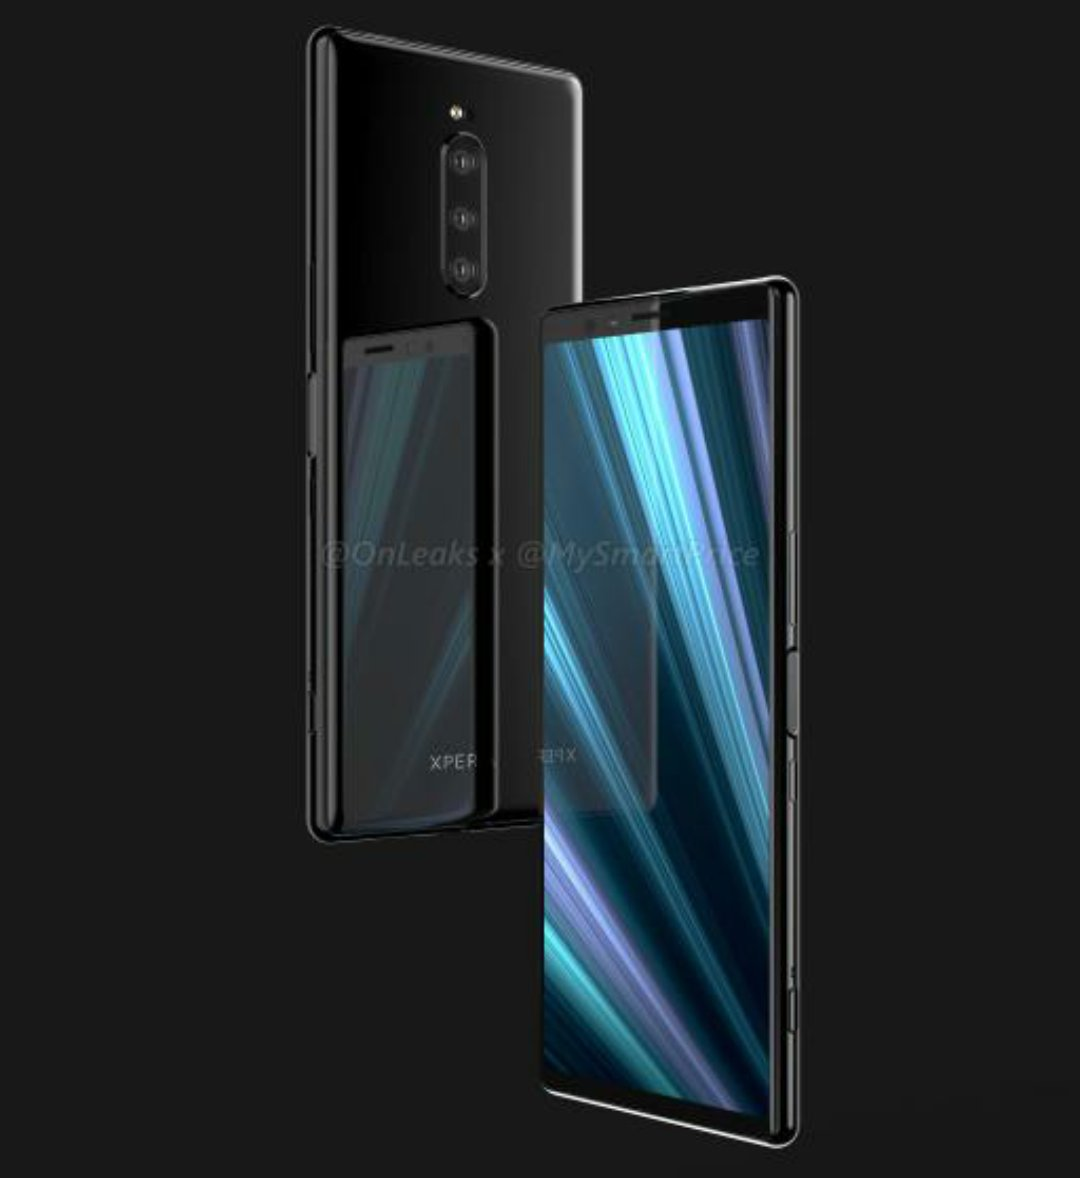 Sony's new flagship Xperia XZ4 may be equipped with a 66